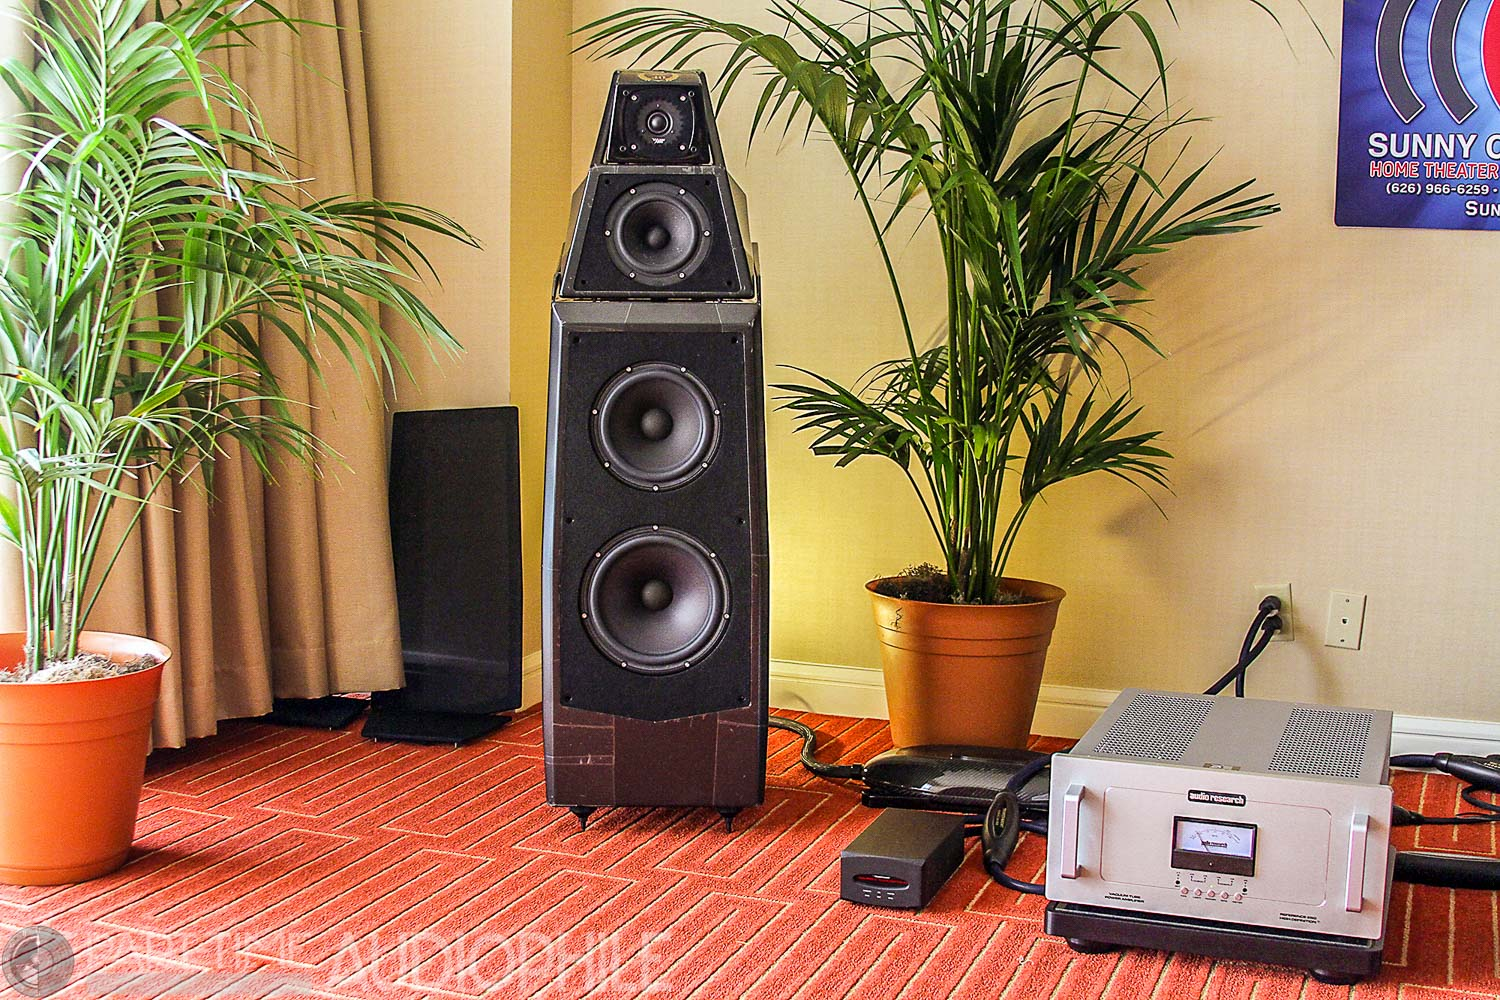 Newport 2015: Sunny Components presents Wilson Audio and Audio Research